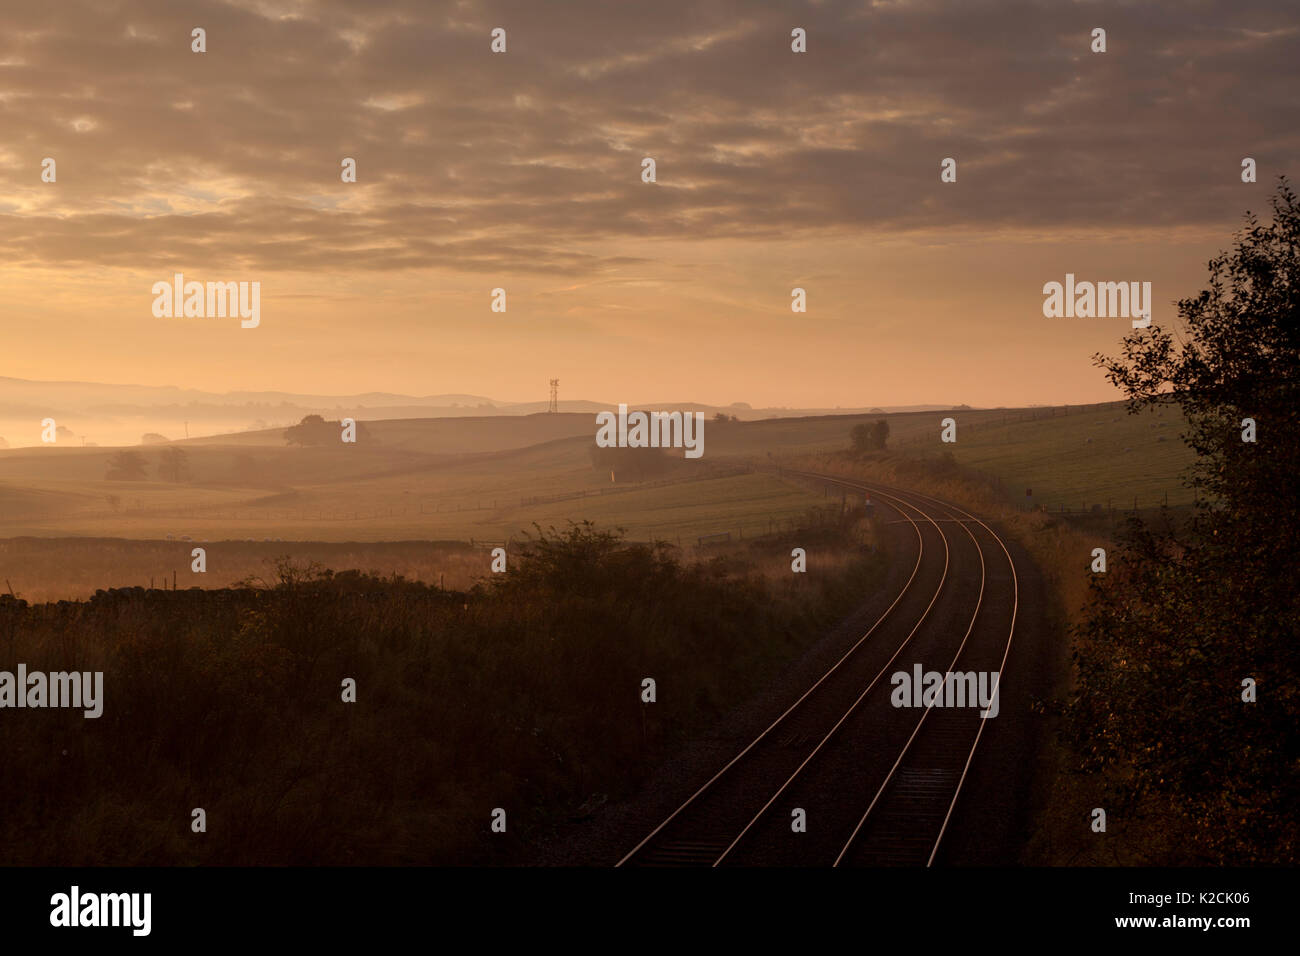 Sunrise over the Network Rail  railway line at Clapham in Yorkshire. - Stock Image